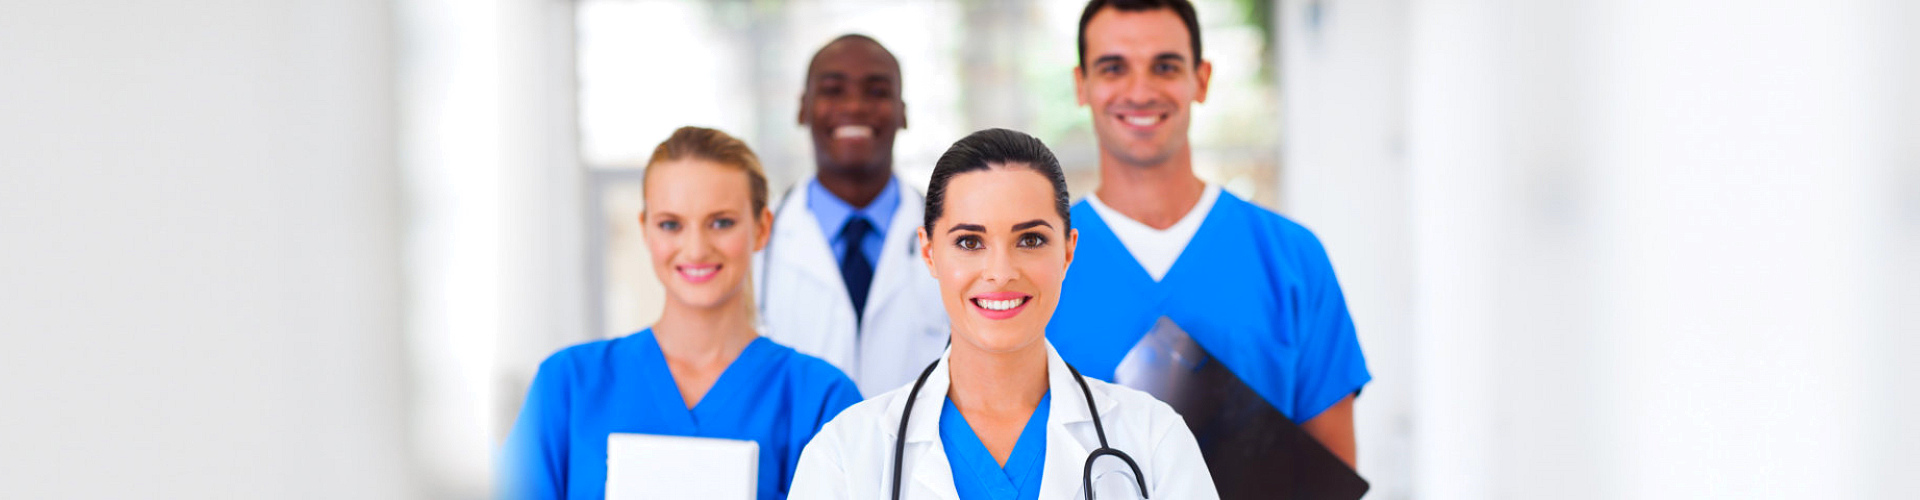 medical staffs smiling while standing on the lobby